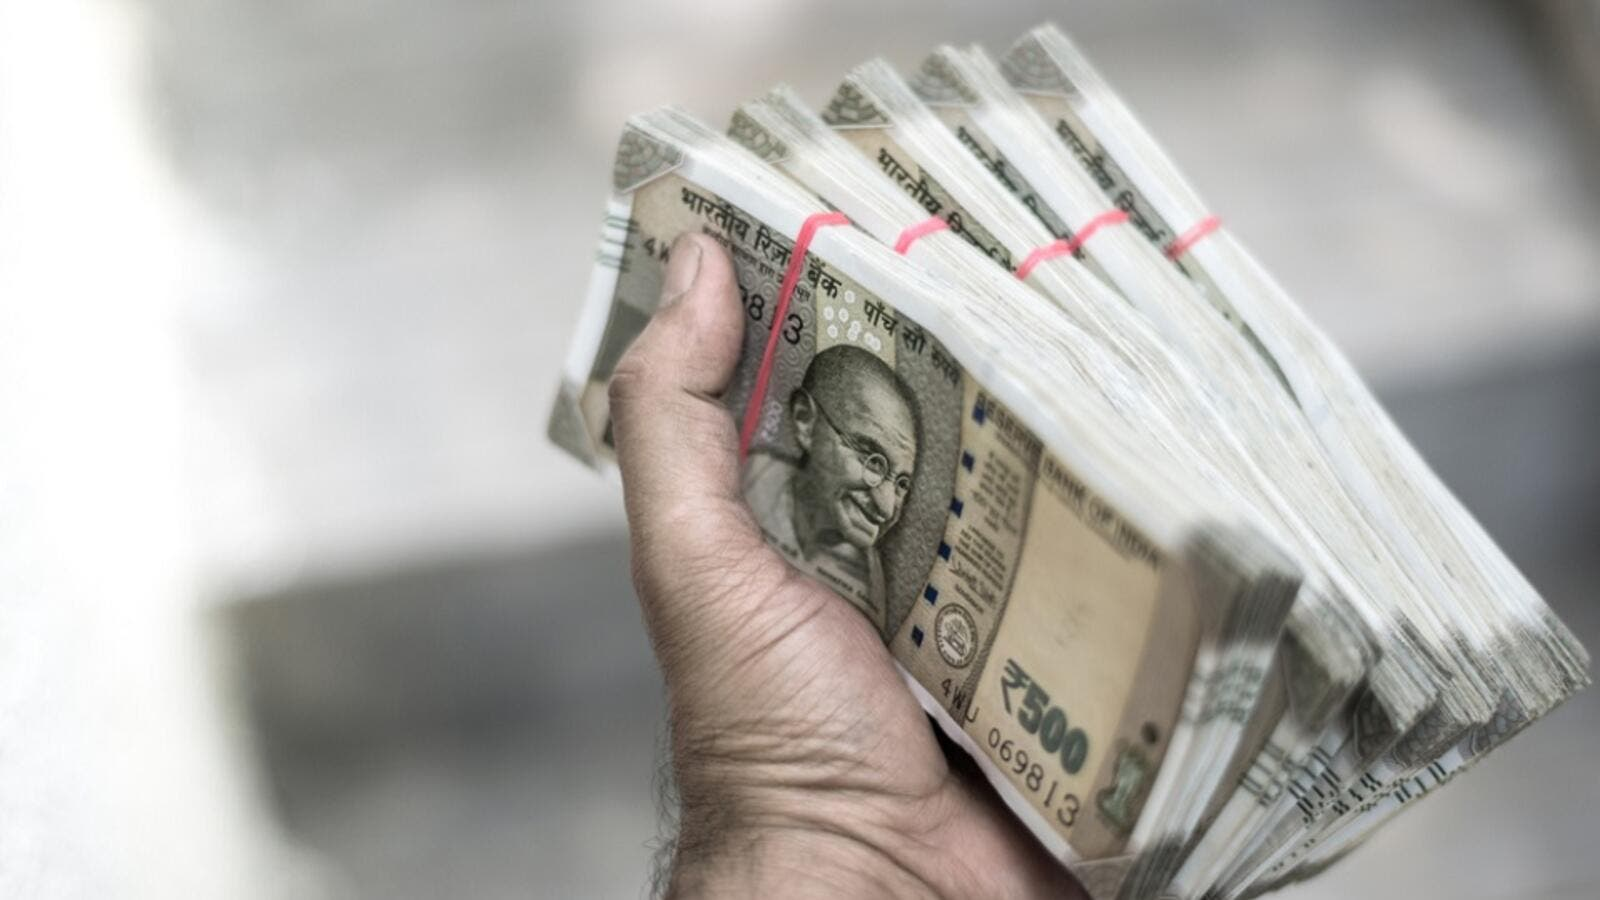 India's economic growth decelerated for the second consecutive year.